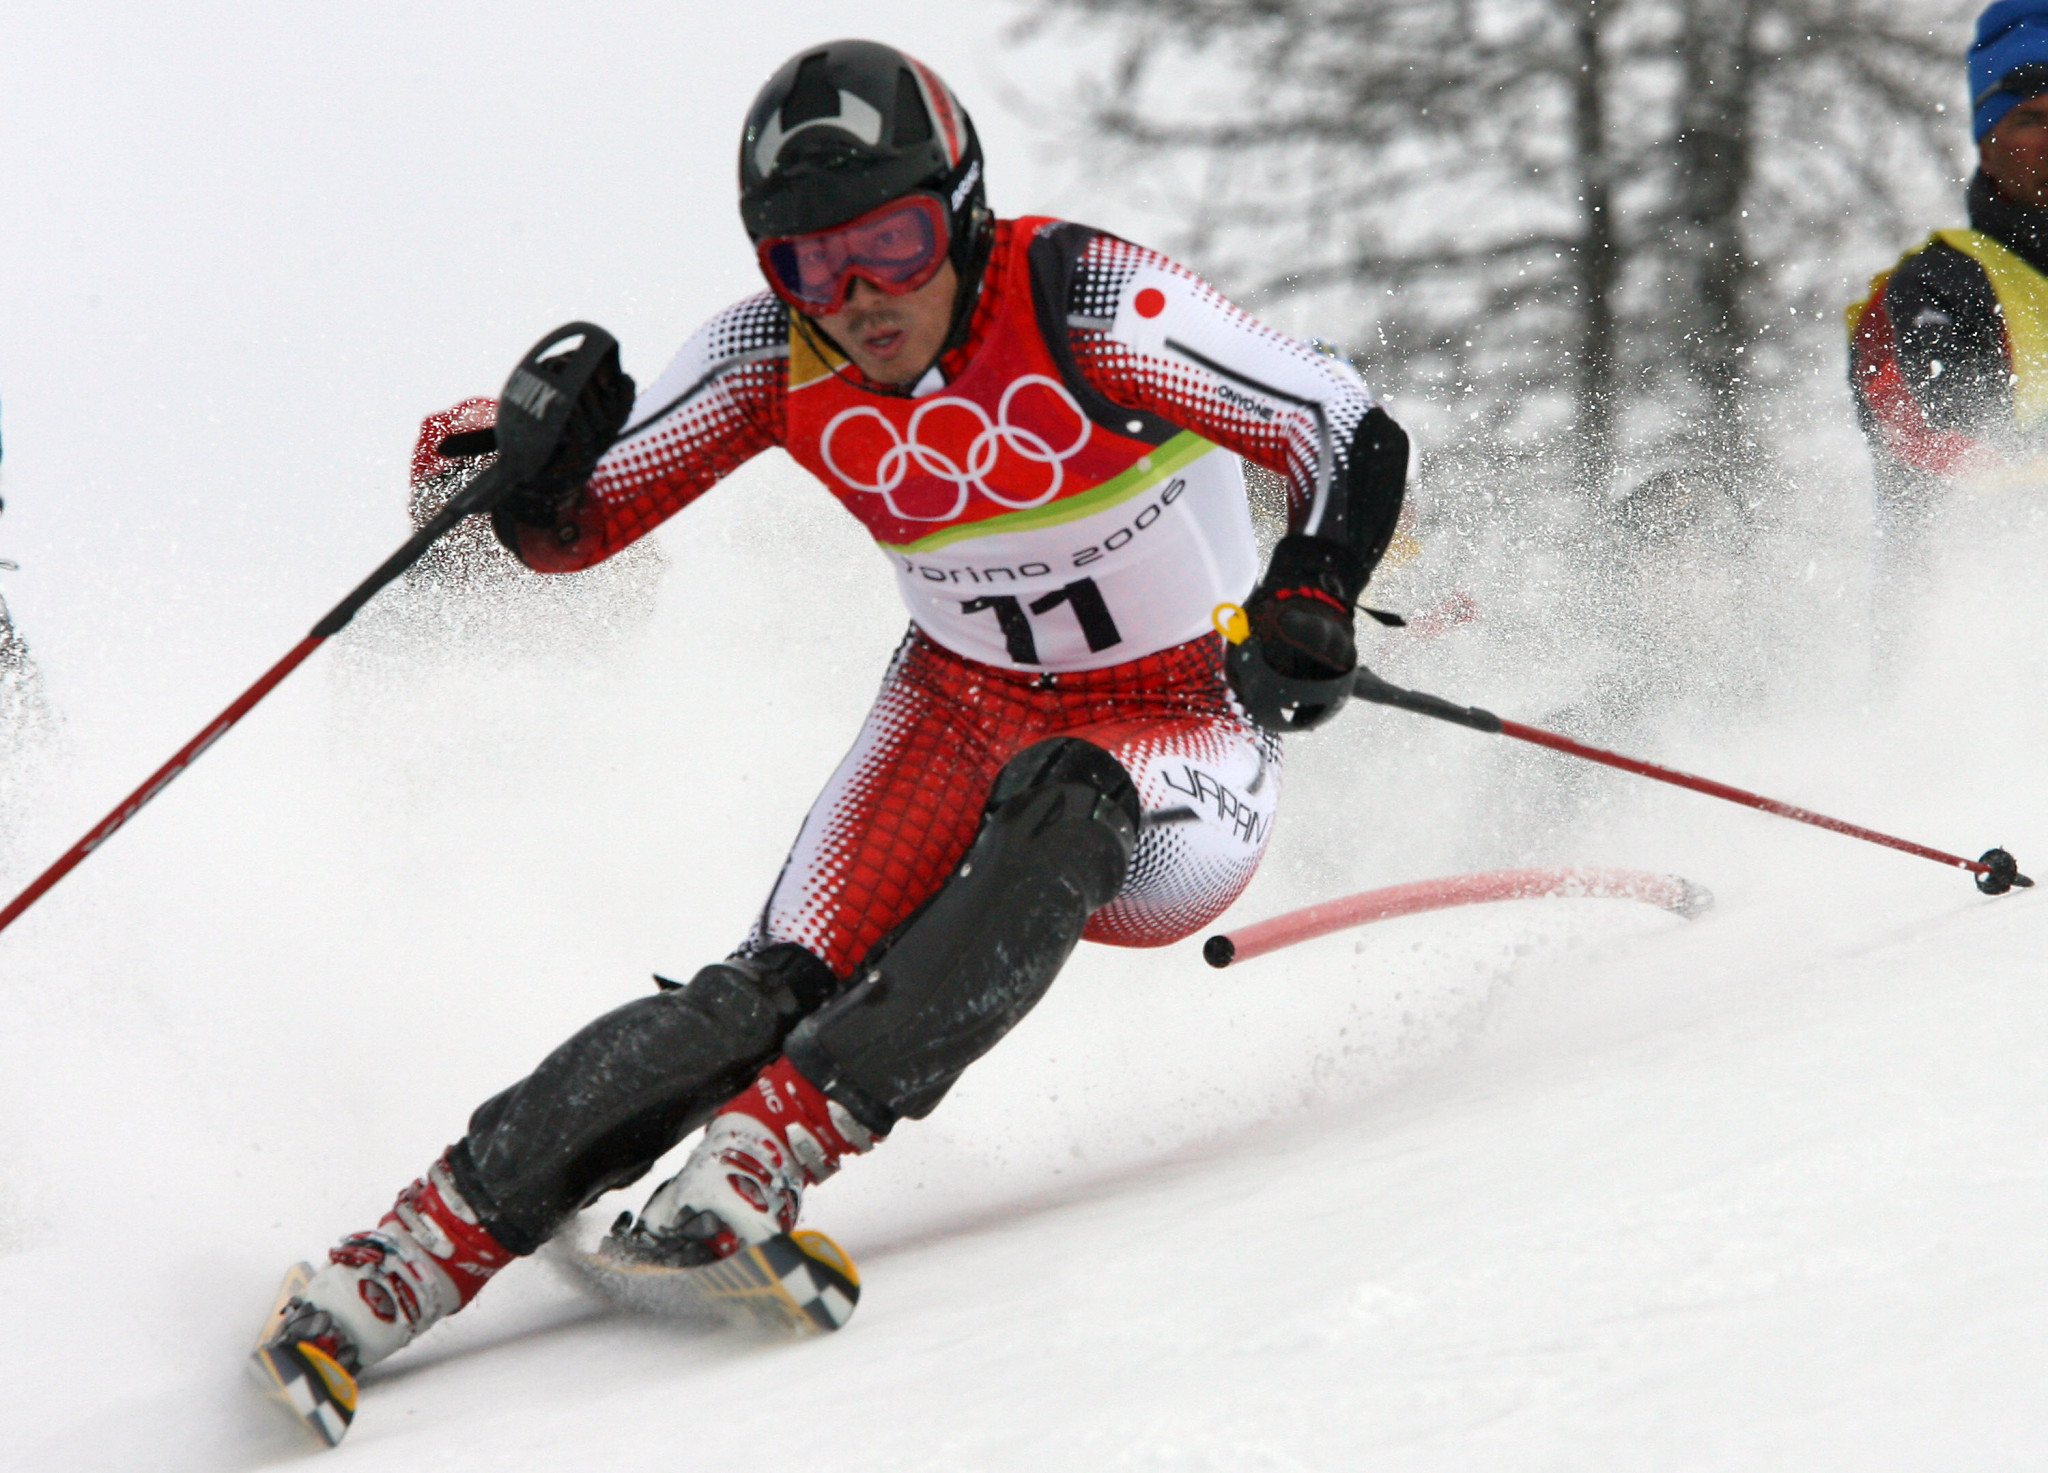 Sestriere was one of the main venues for the 2006 Winter Olympic and Paralympic Games in Turin ©Getty Images